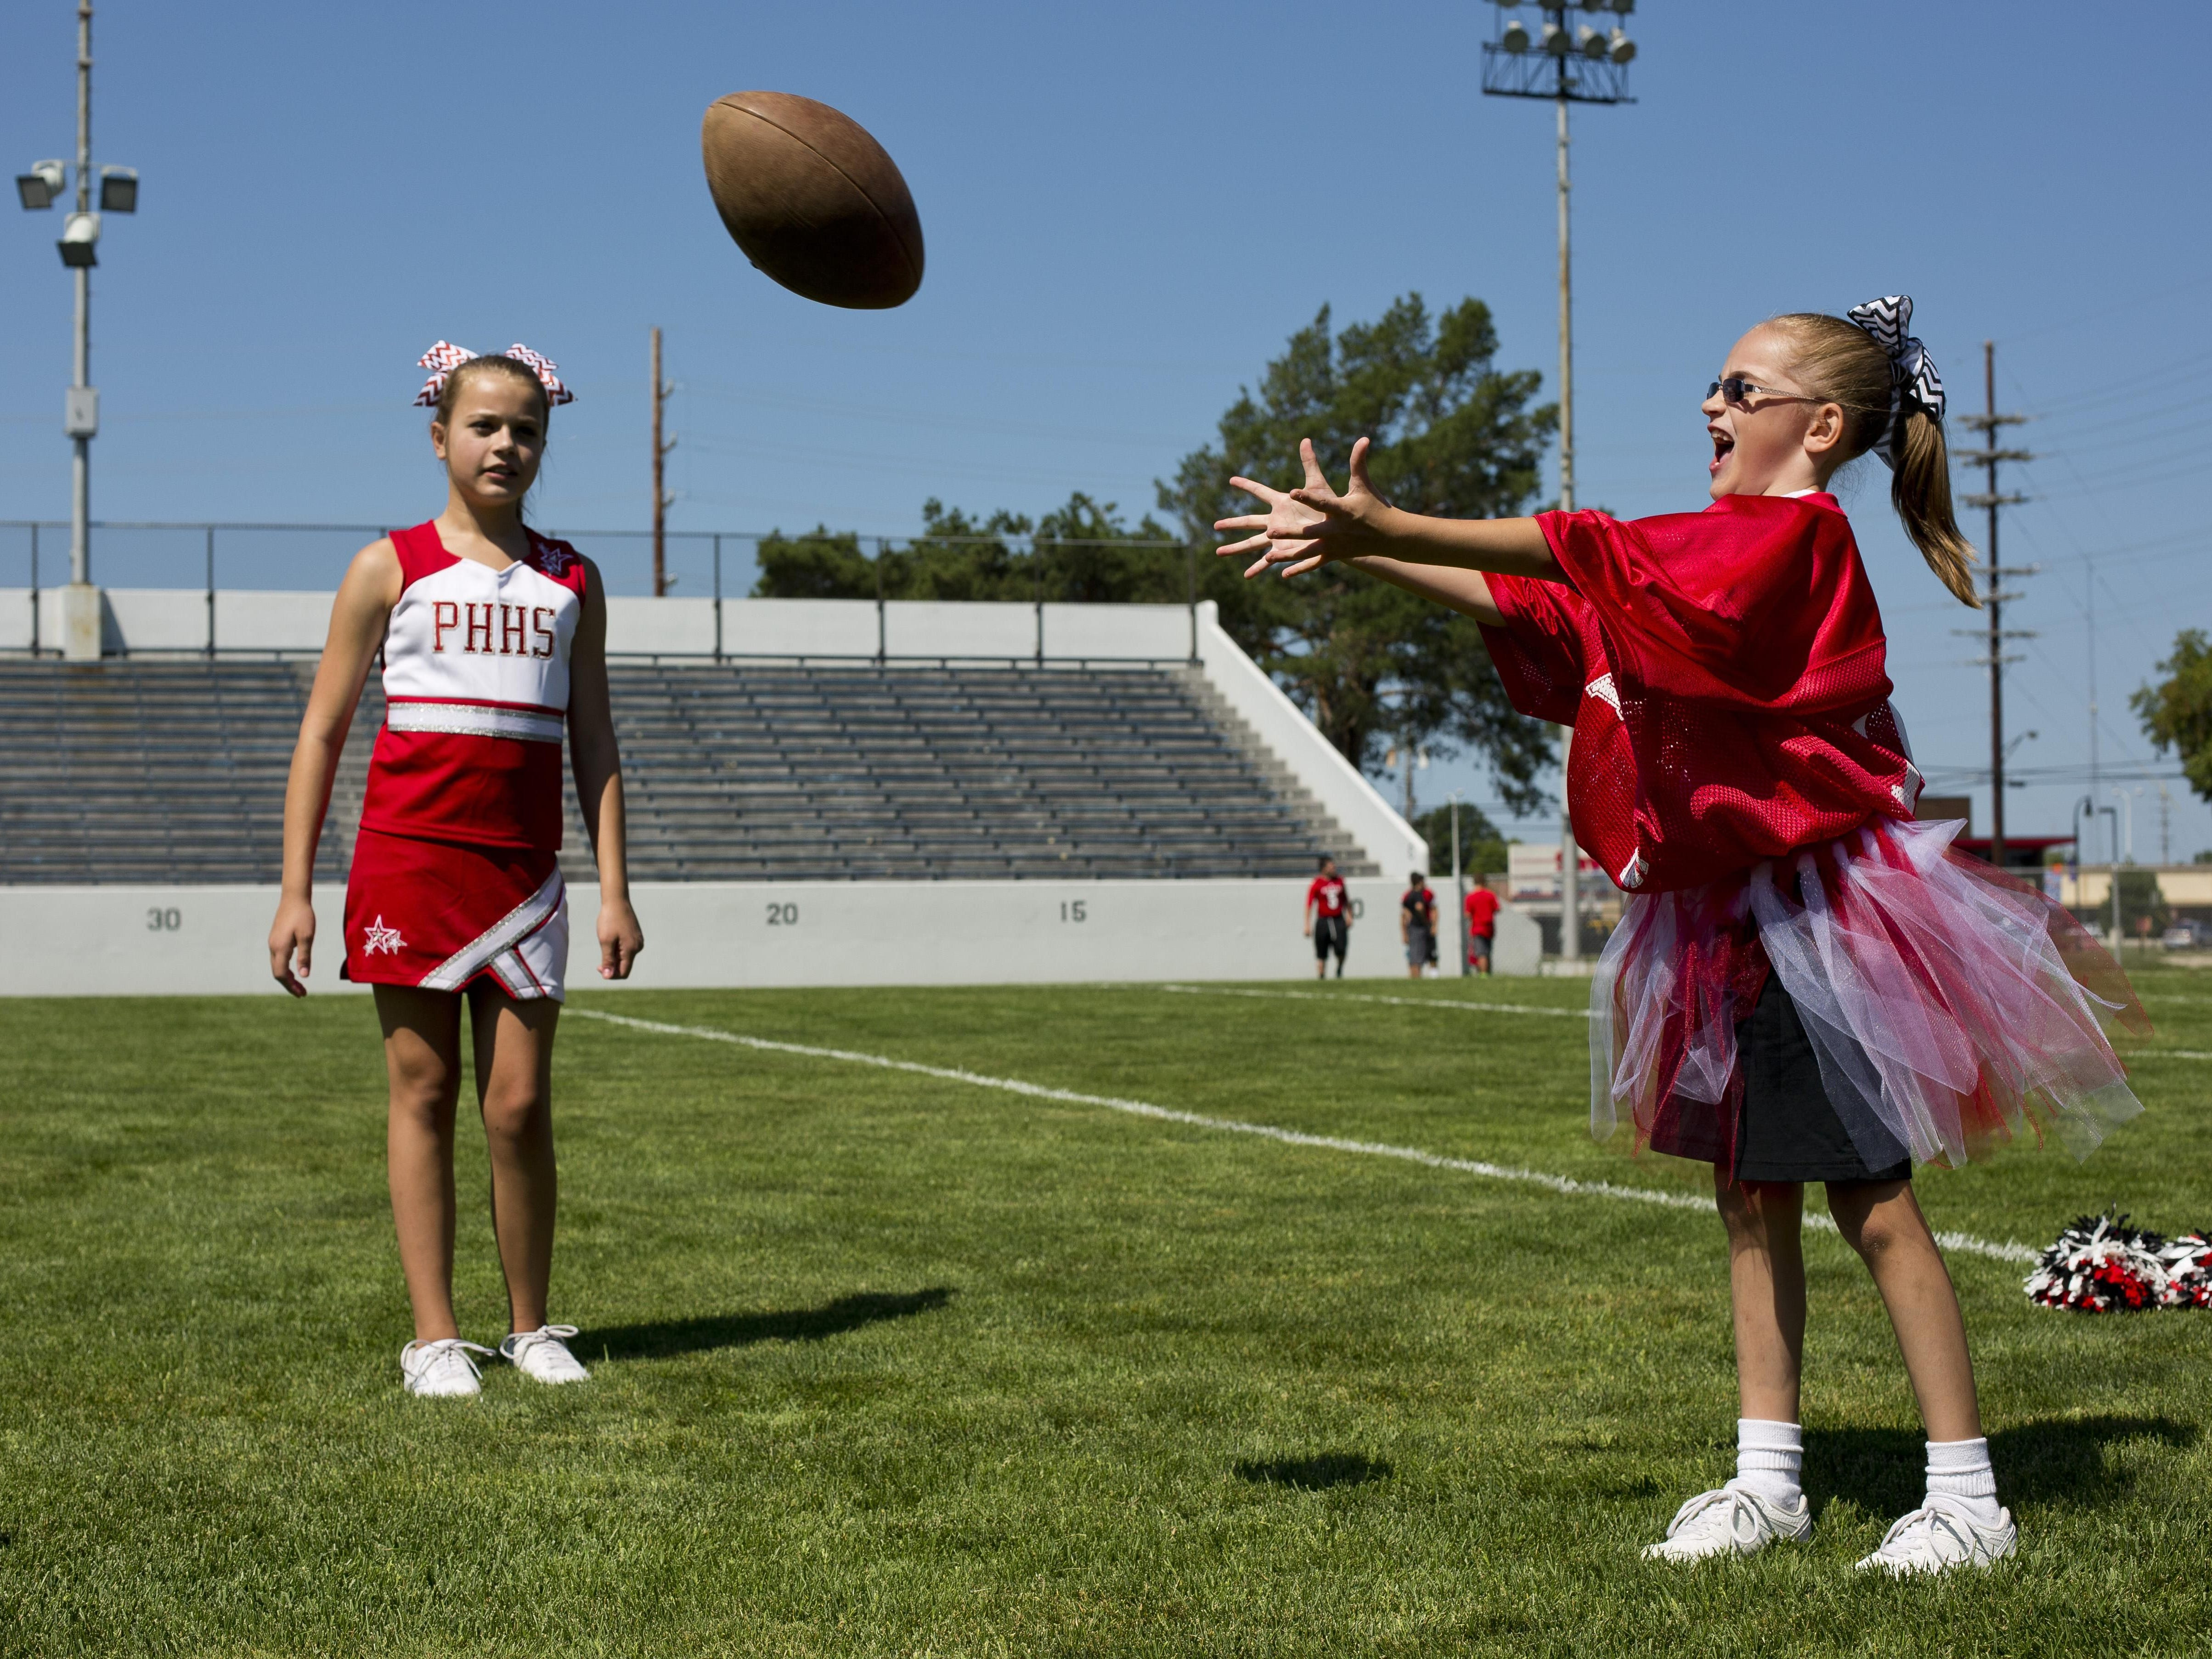 Gracie Allen, right, plays catch with mentor Victoria Johnson and others during Victory Day Saturday, August 15, 2015 in Memorial Stadium at Port Huron High School. The event paired special needs students with mentors from the football and cheerleading teams.